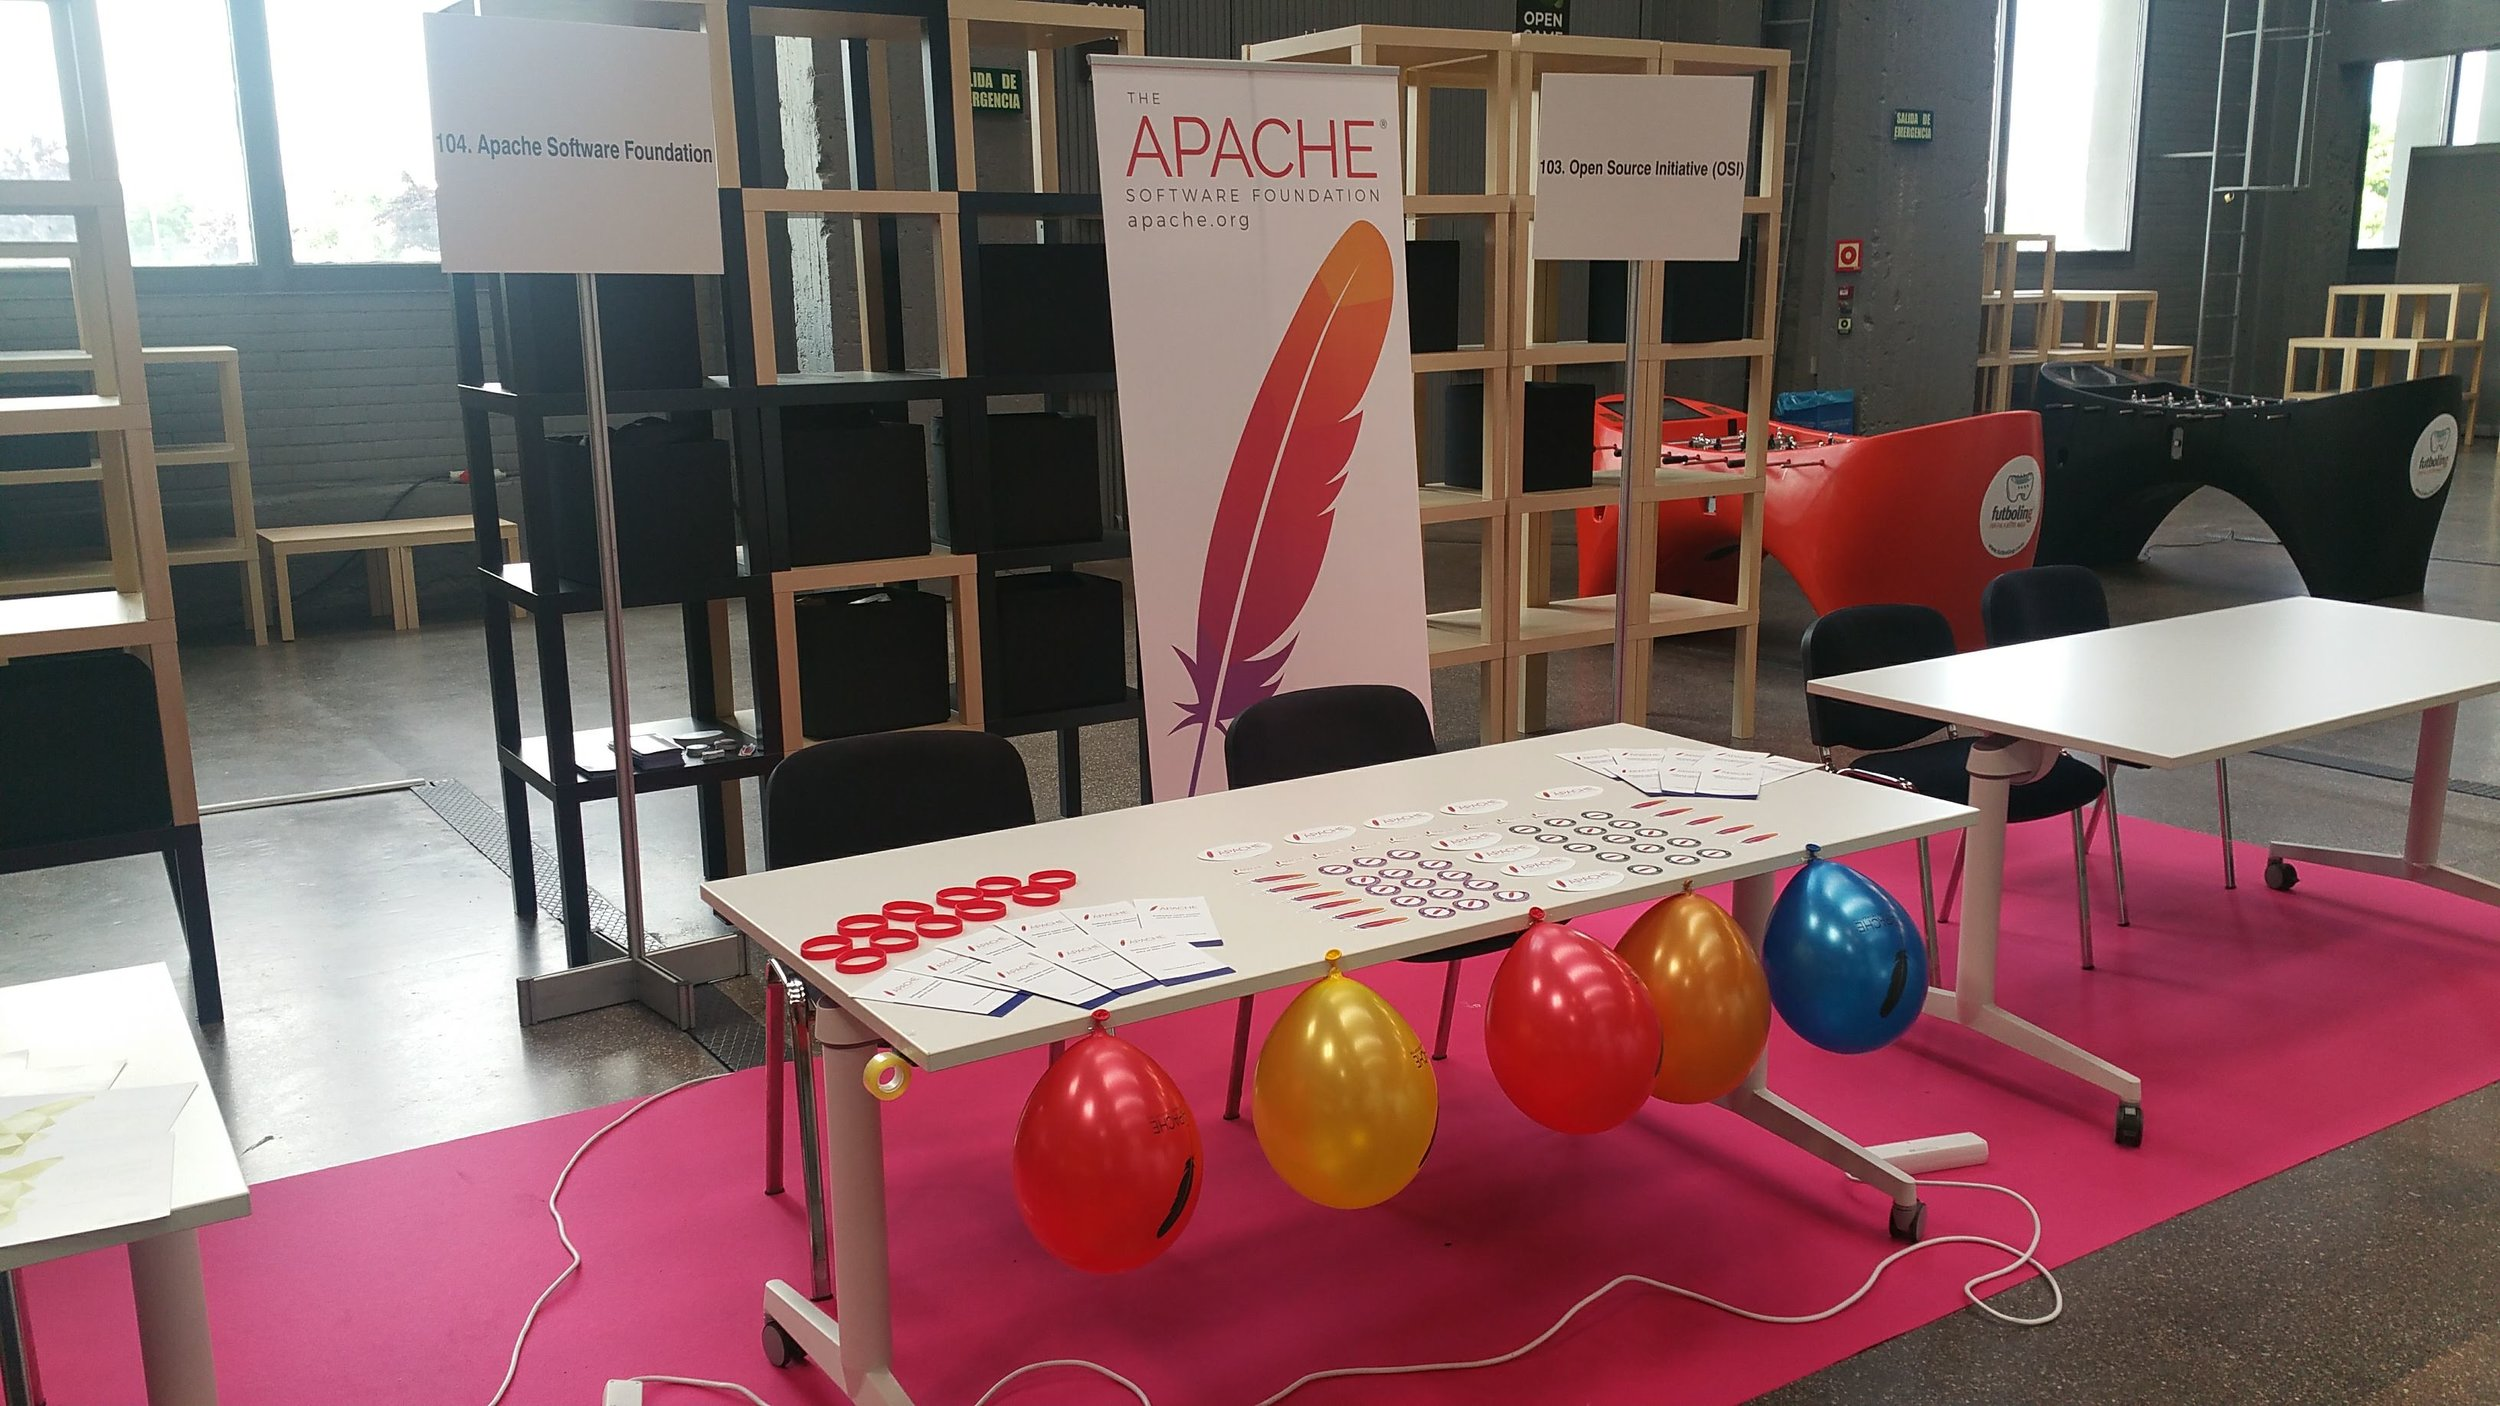 Apache booth